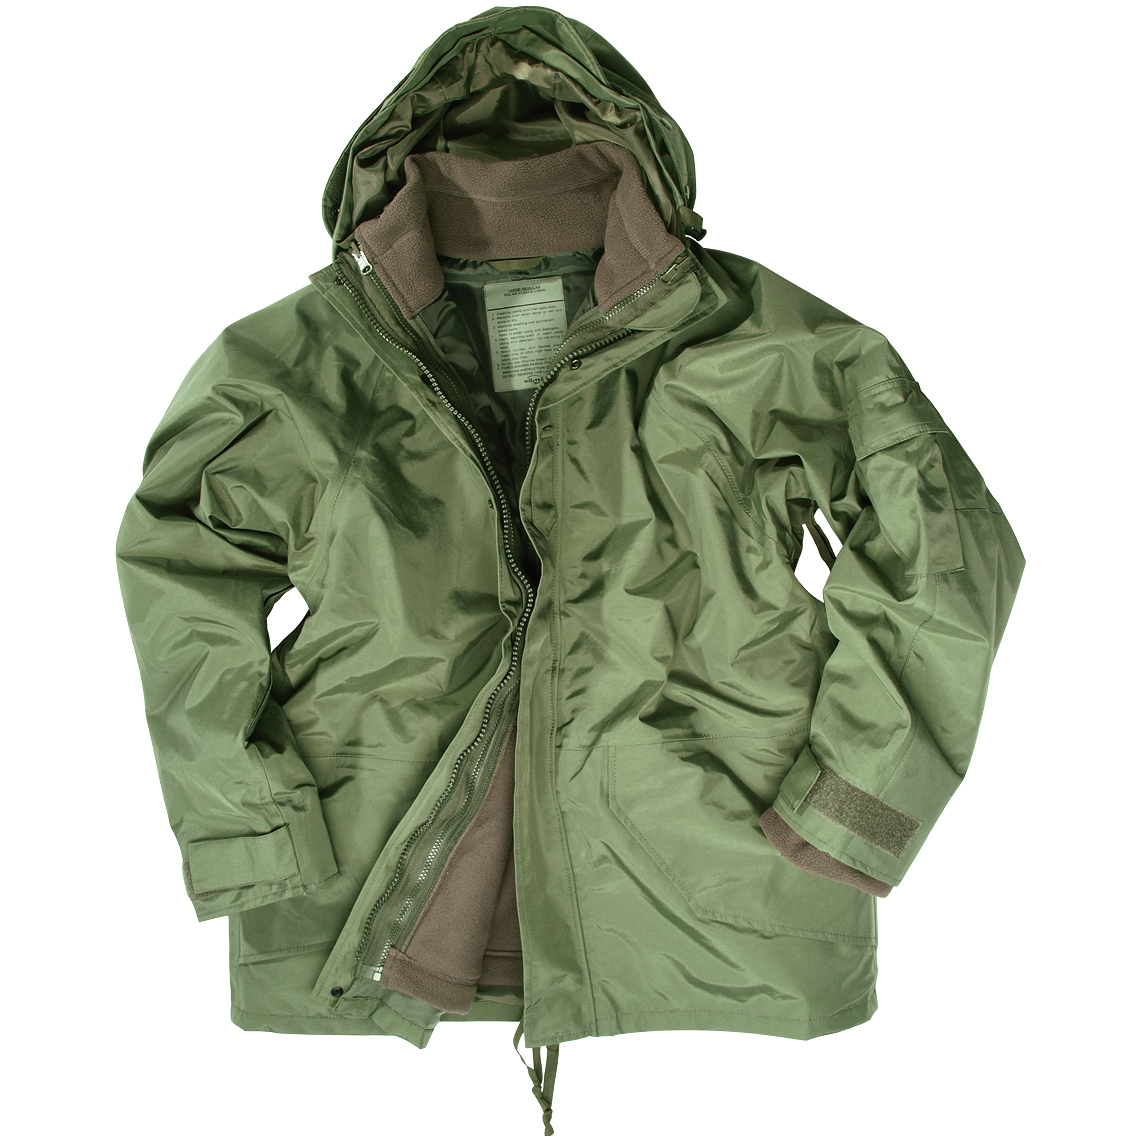 Mil-Tec ECWCS Jacket with Fleece Olive | ECWCS | Military 1st